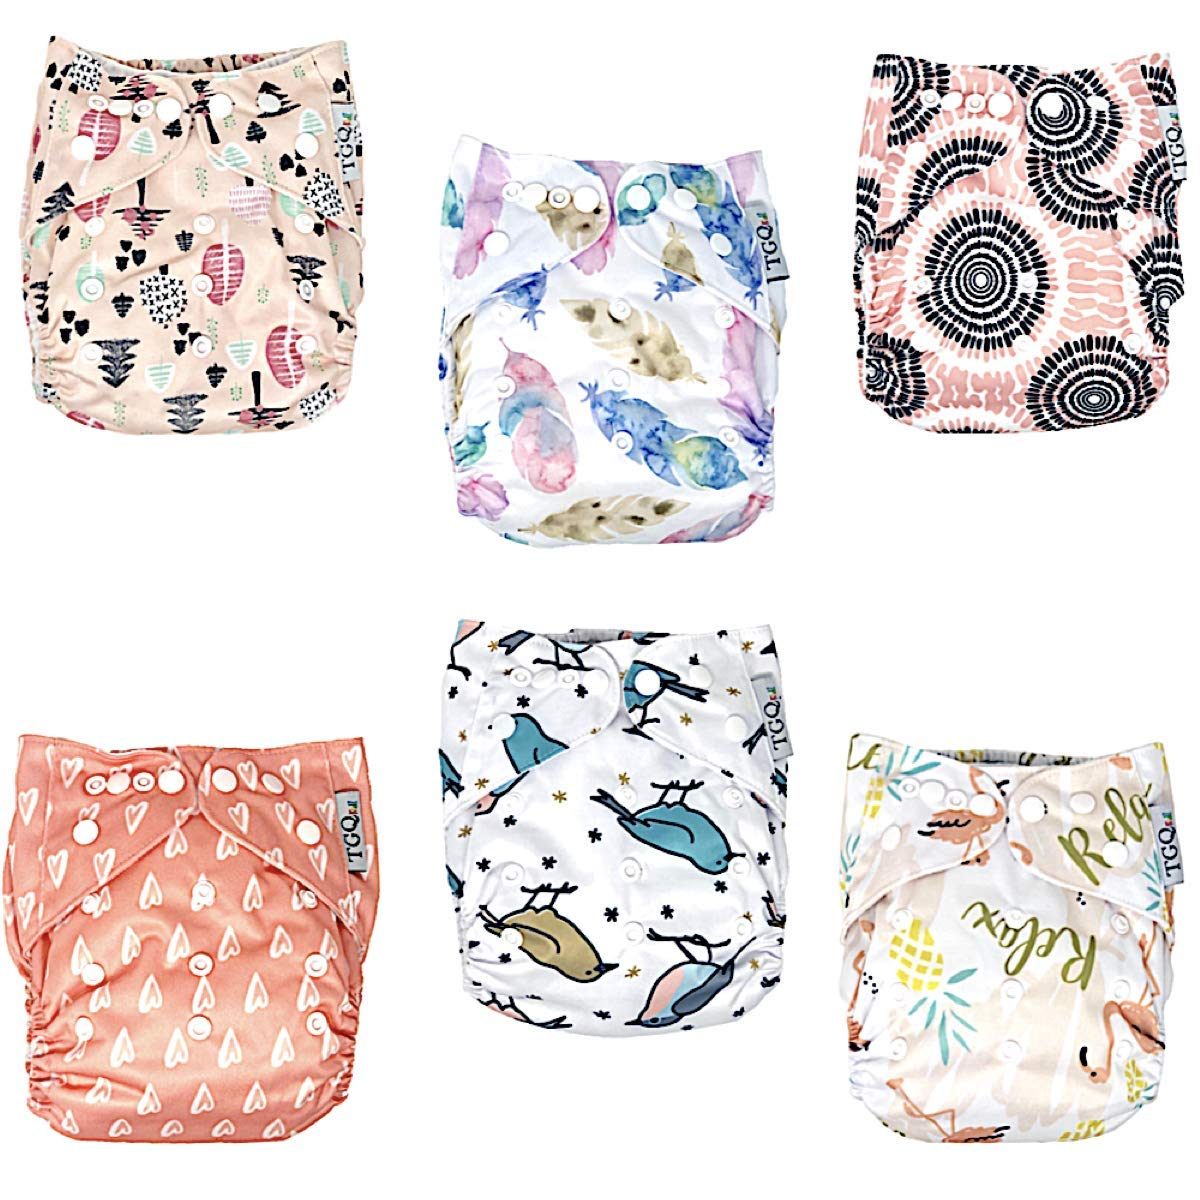 TGQ KIDZ | 6 Cloth Diapers plus 6 Inserts | Washable & 100% cotton| Adjustable Baby Diapers + Reusable| Girl by TGQ KIDZ